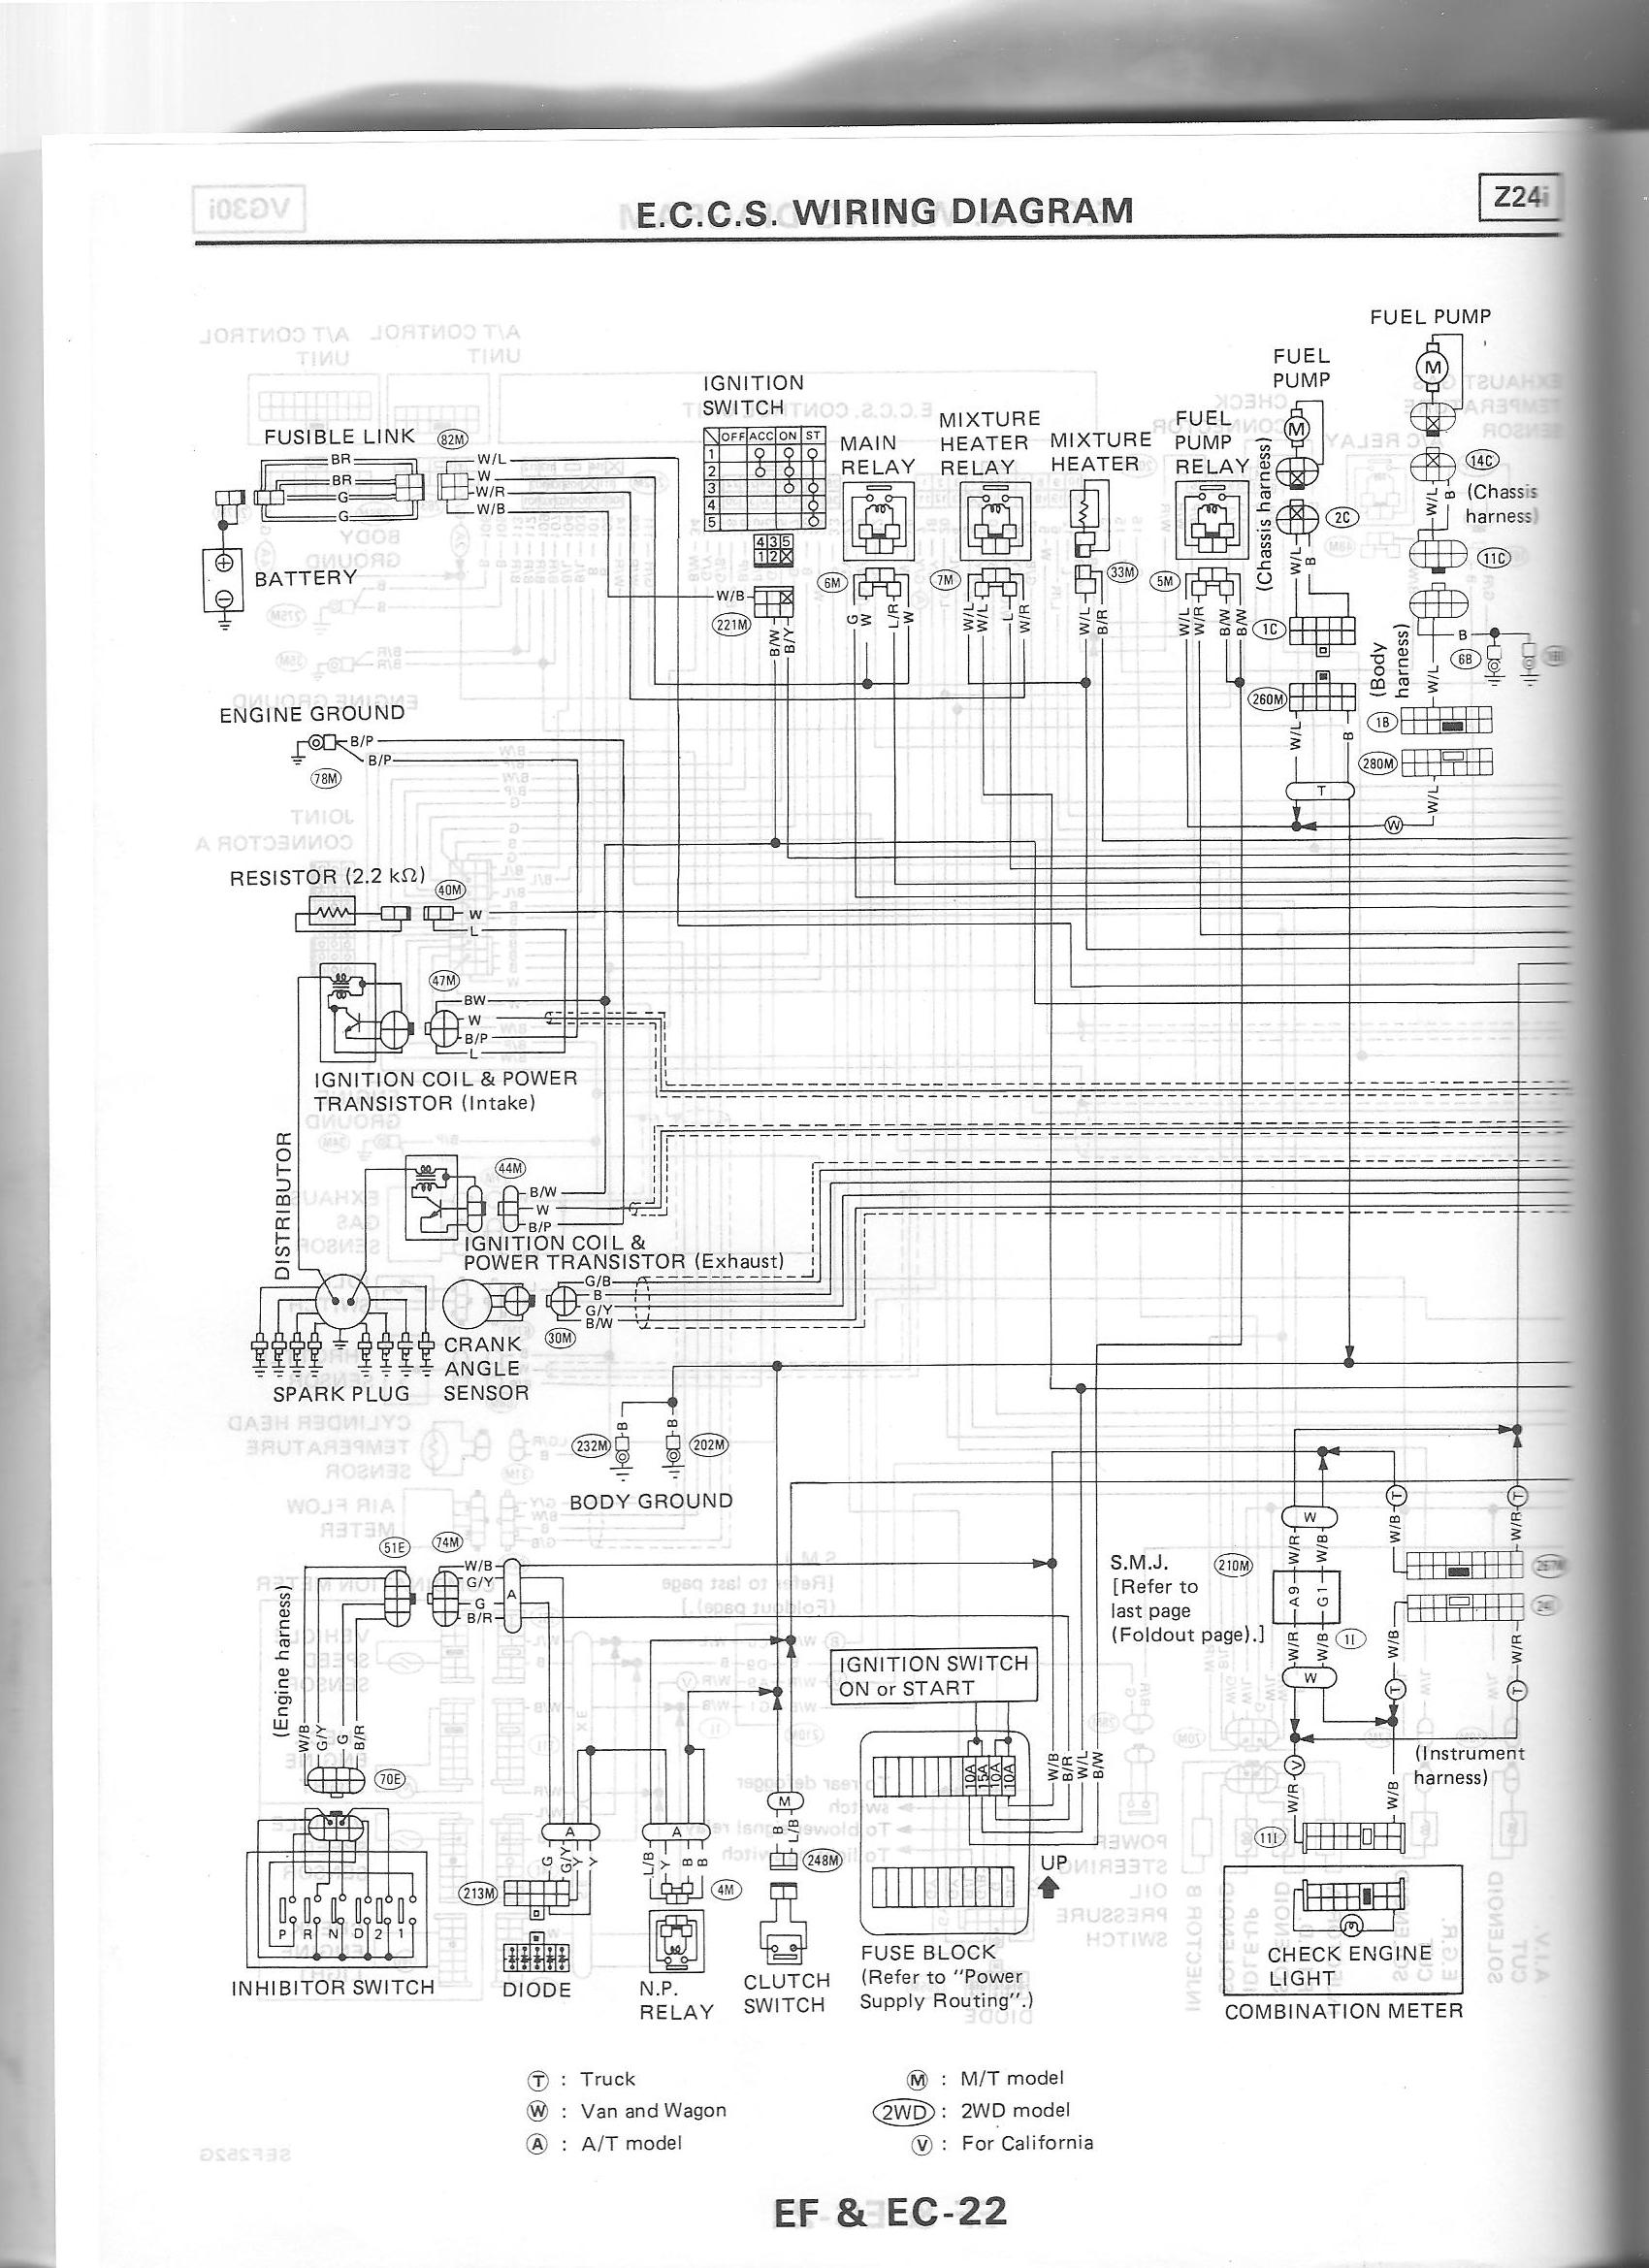 datsun electronic fuel injection wiring diagrams volvo truck wiring diagrams wiring diagrams